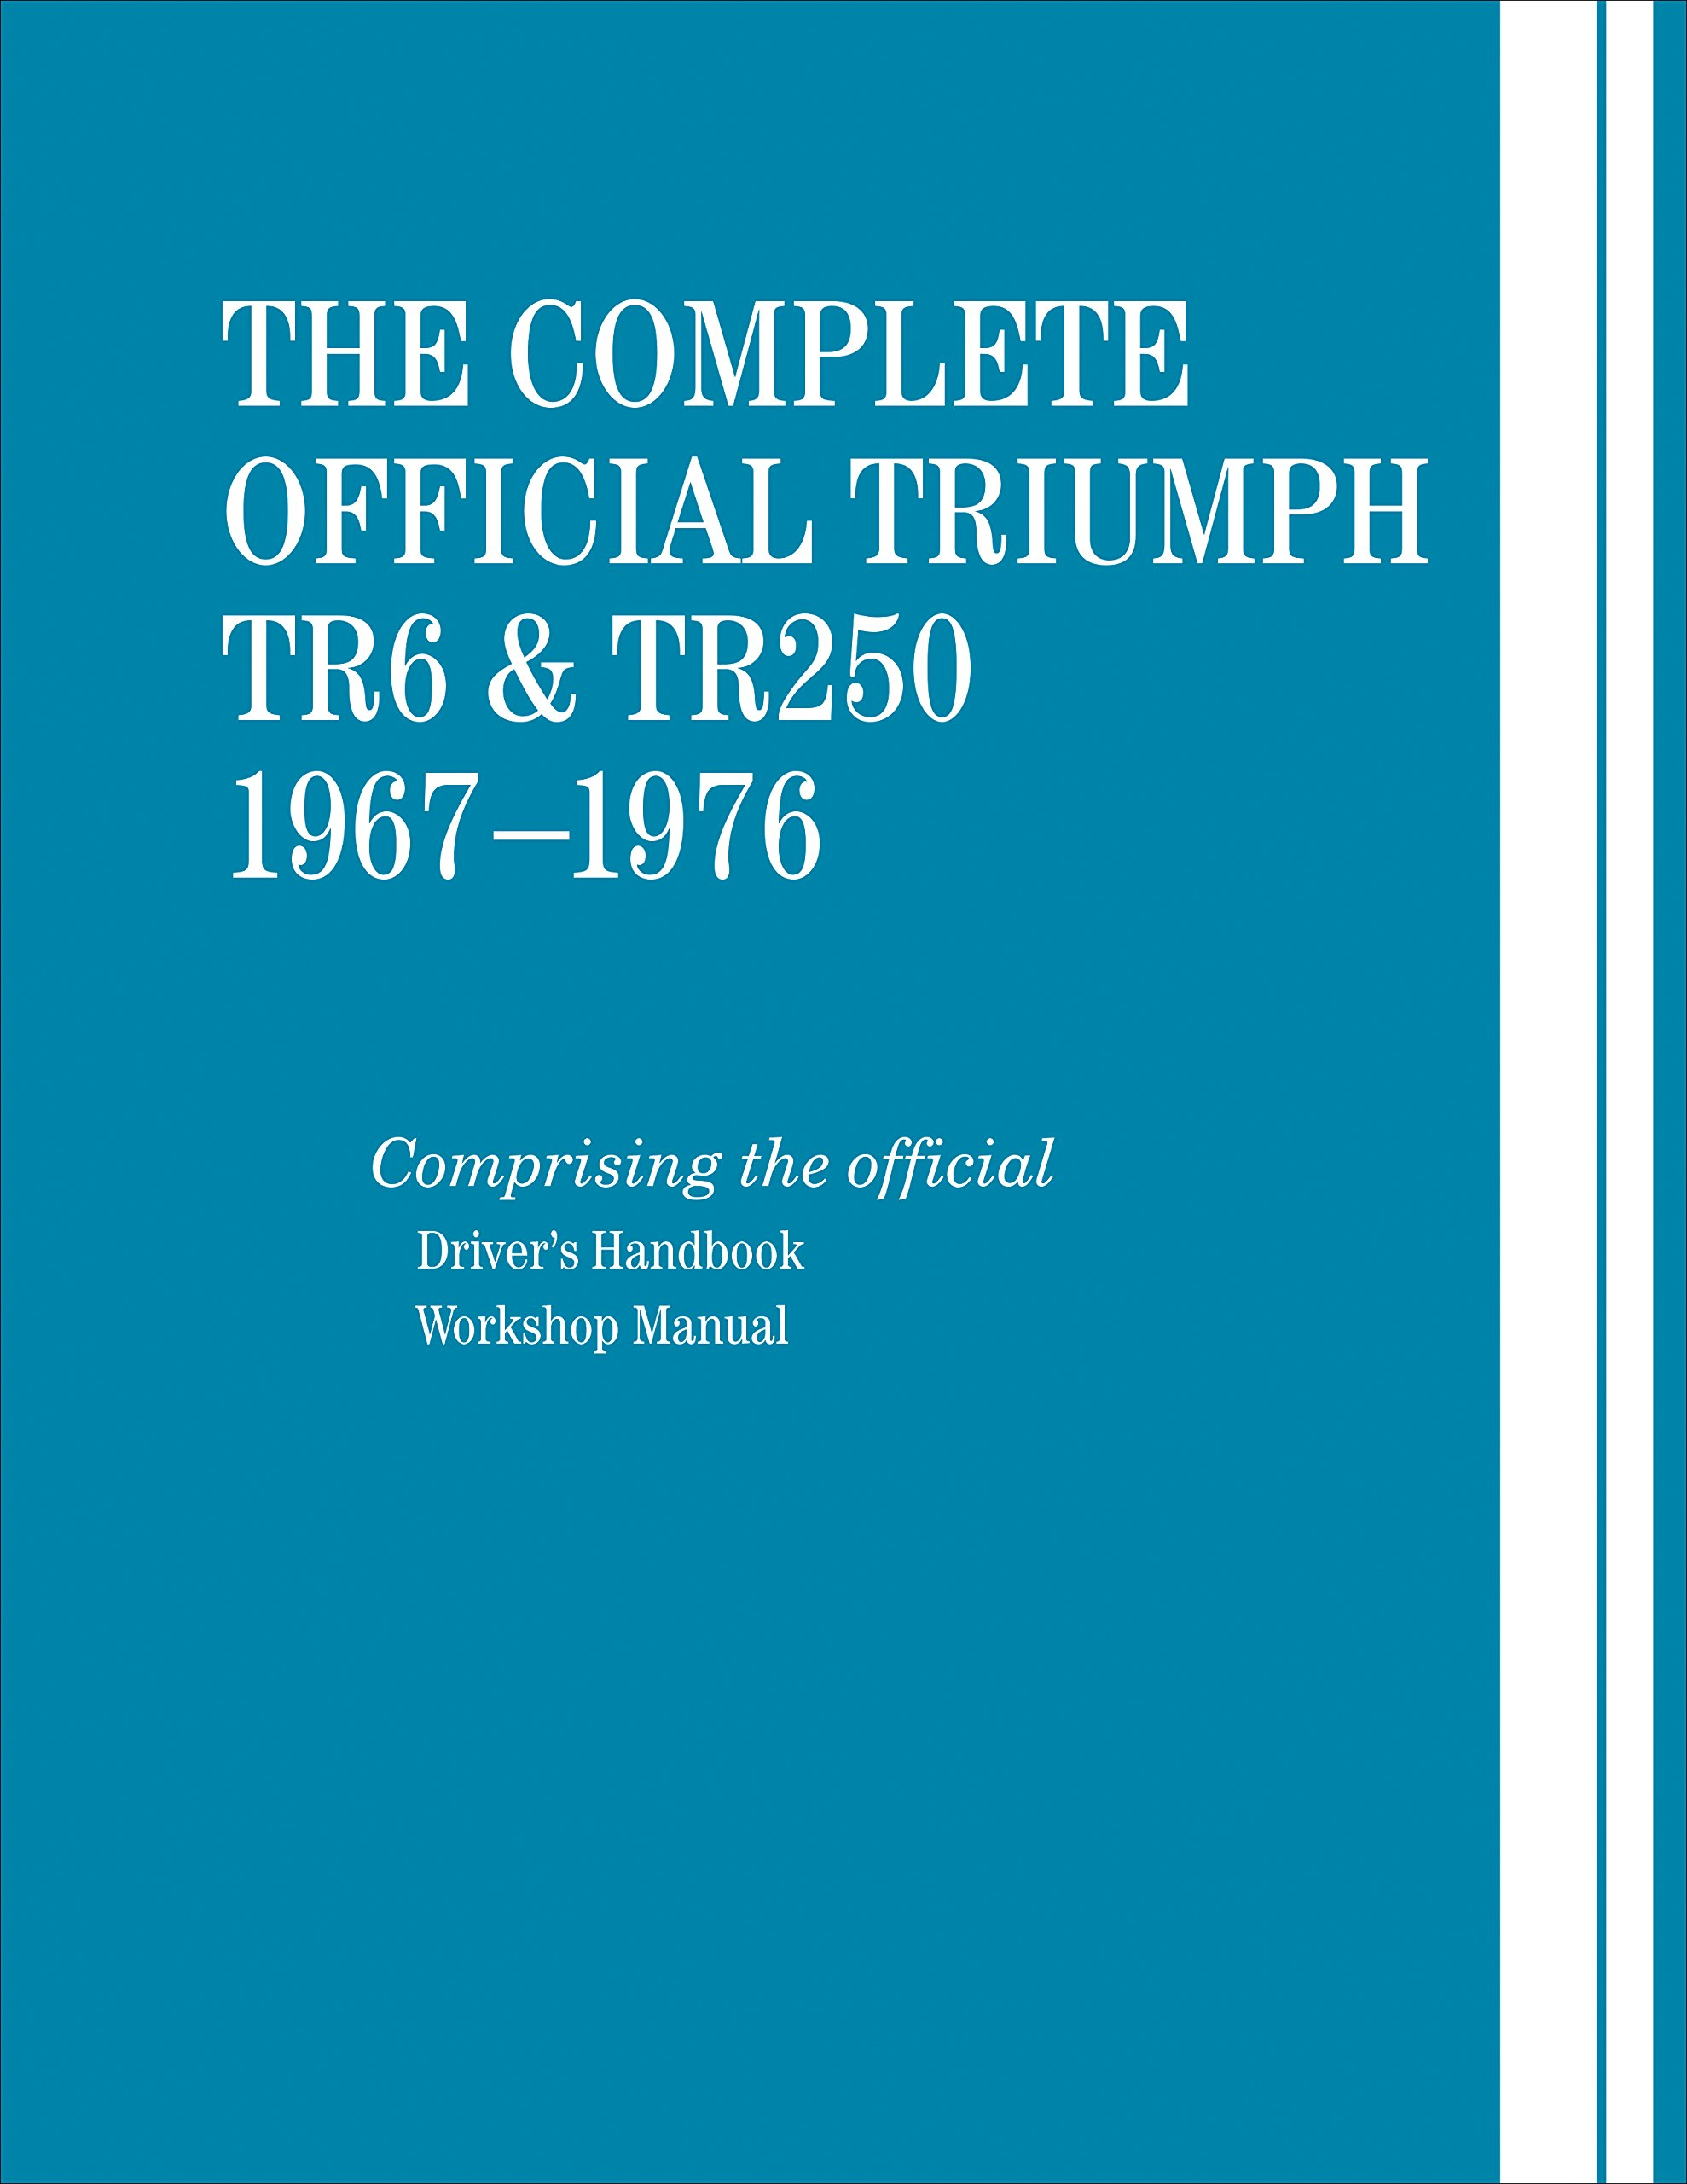 The Complete Official Triumph Tr6 Tr250 1967 1976 Includes 76 Wiring Diagram Drivers Handbook And Workshop Manual British Leyland Motors 9780837617626 Books Amazon